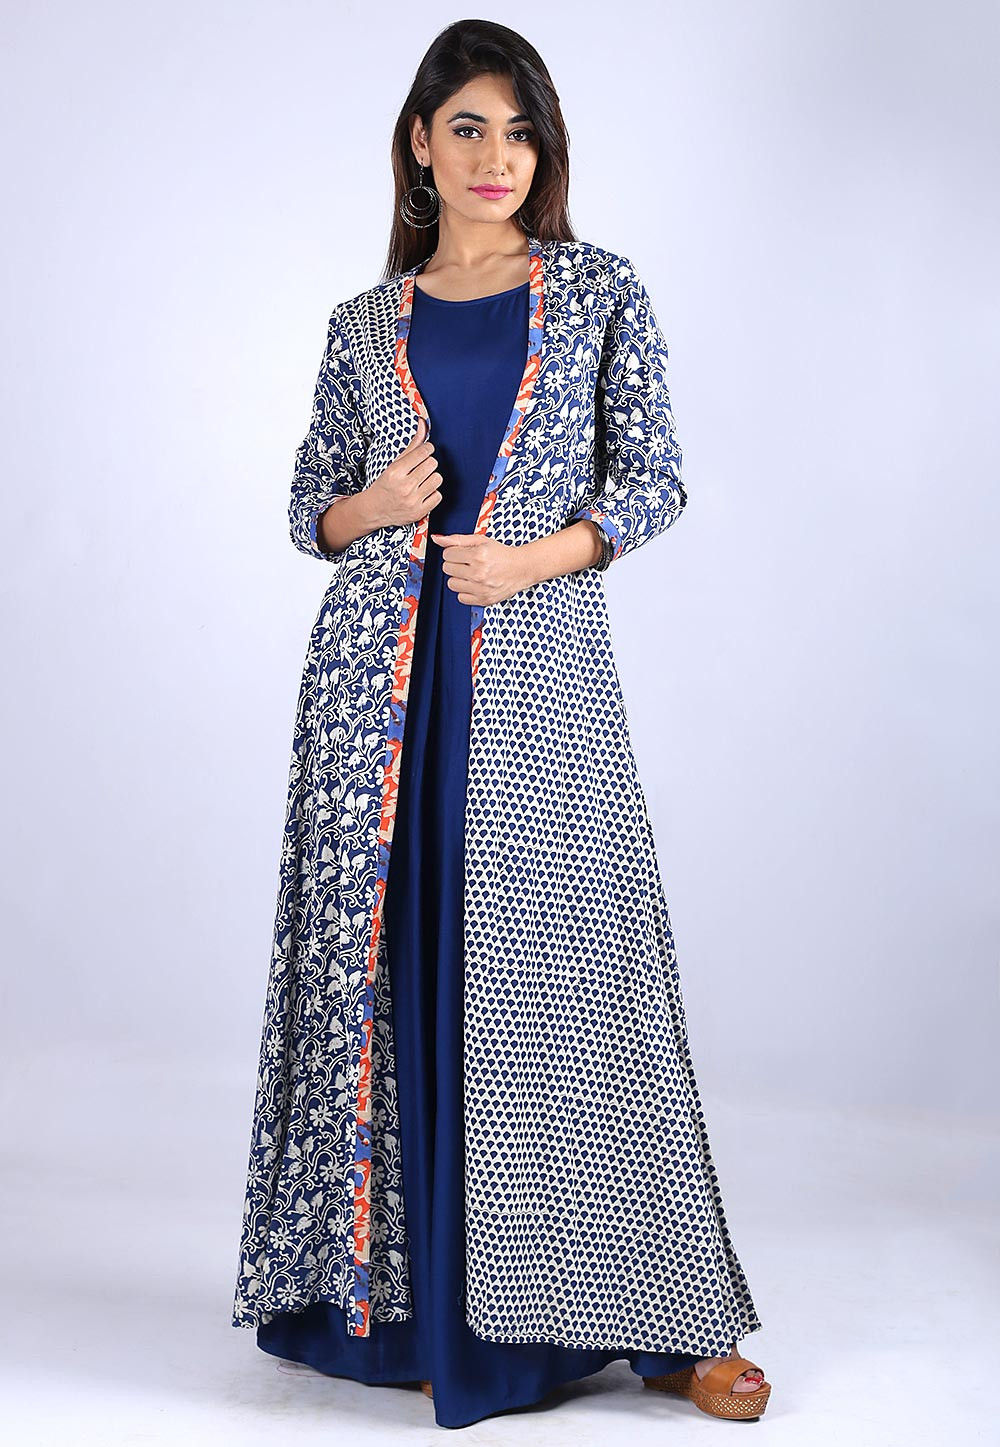 Dabu Printed Rayon Cotton Dress in Blue